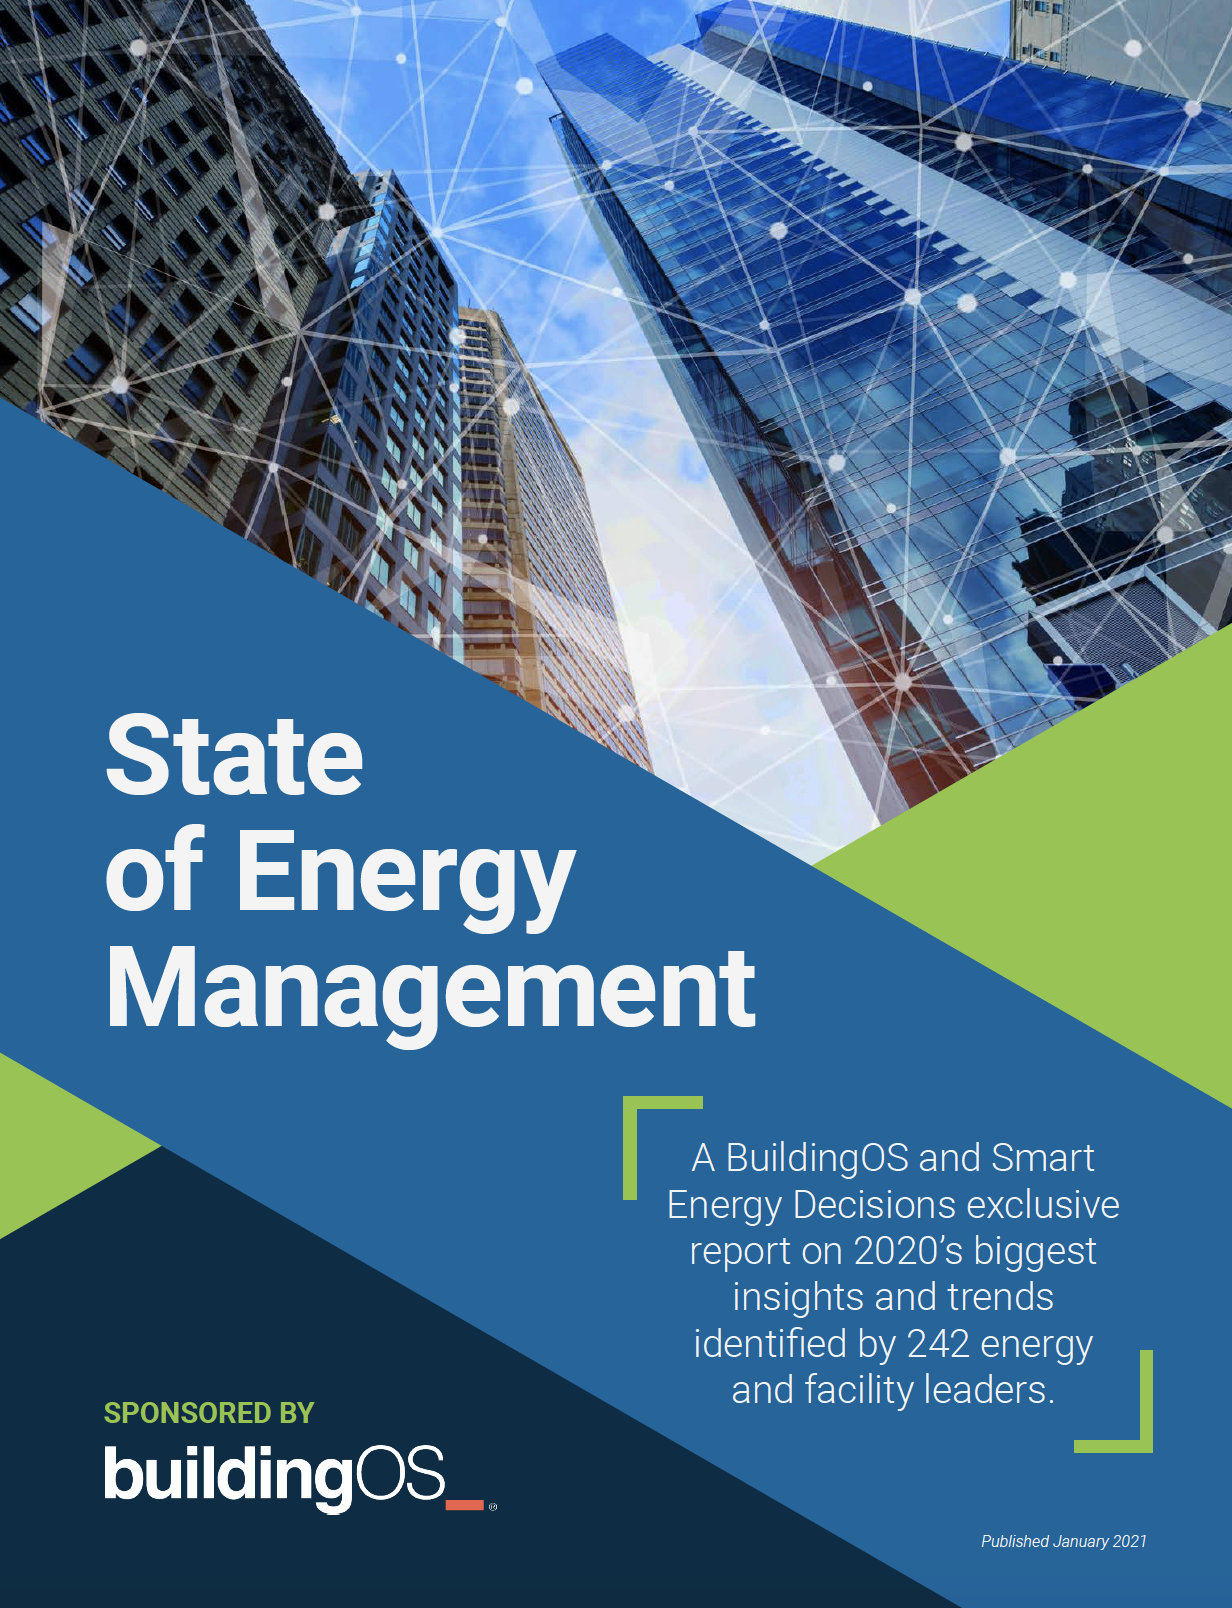 State of Energy Management report